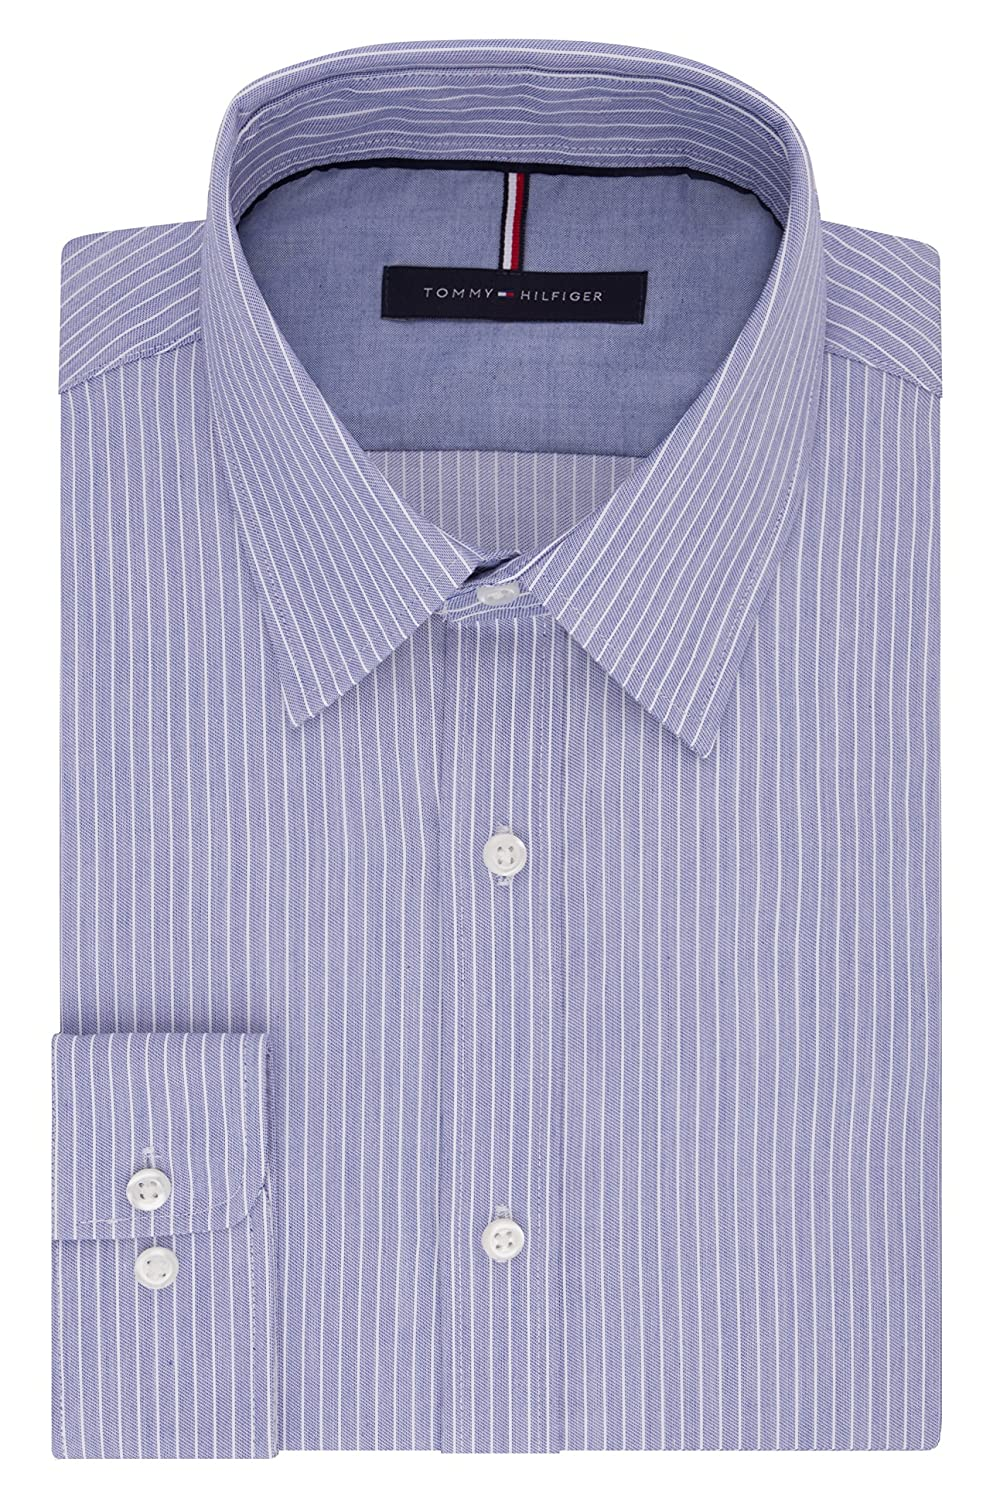 Tommy Hilfiger Mens Non Iron Slim Fit Banker Stripe Point Collar Dress Shirt 24N0920